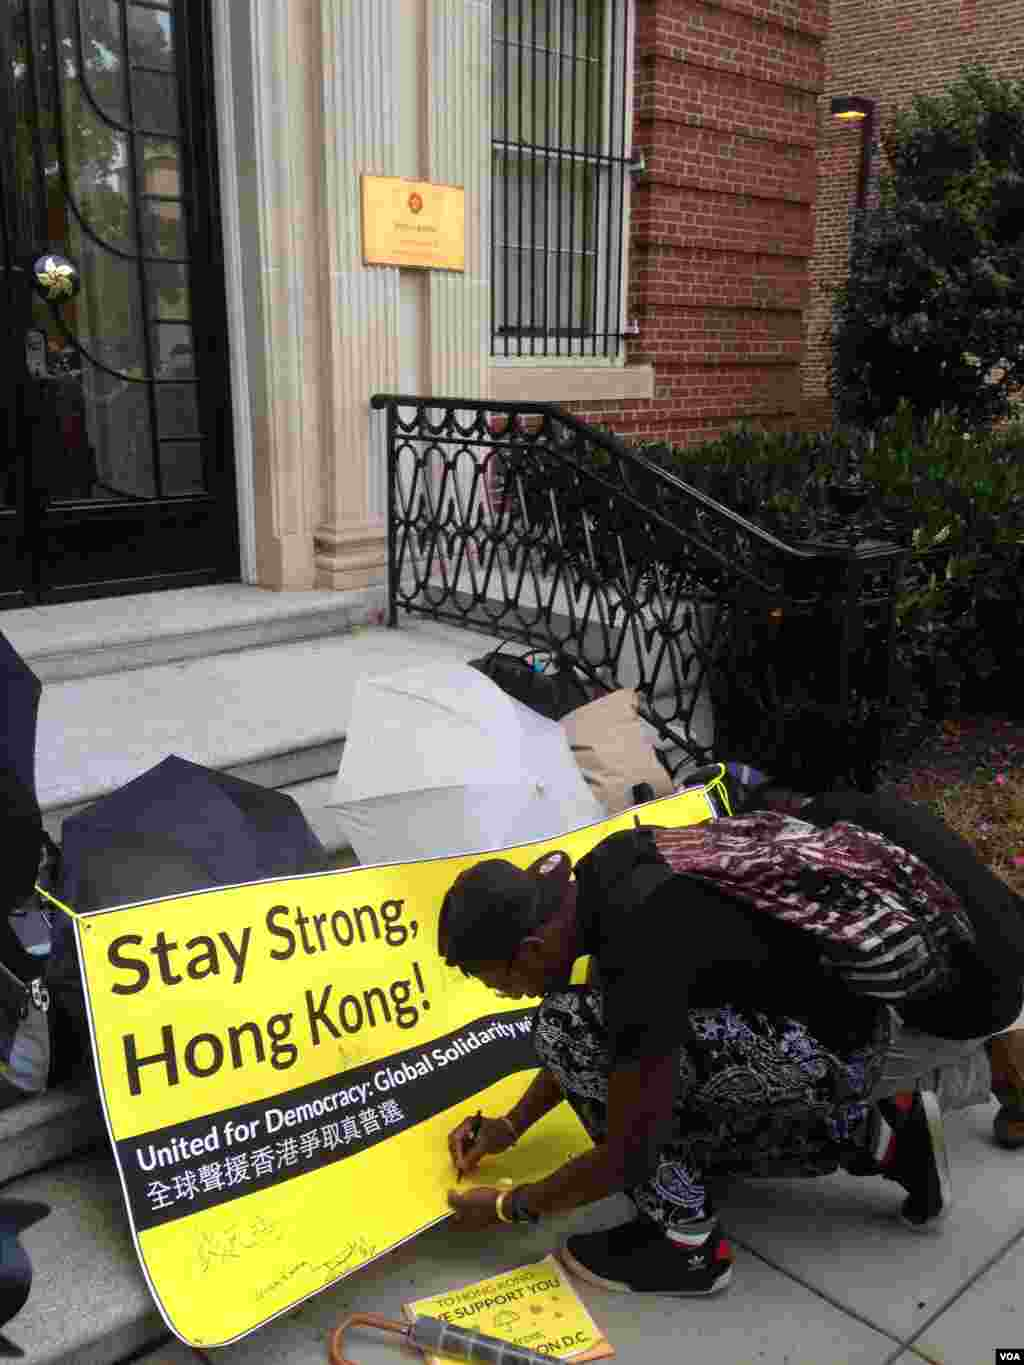 Supporters of Hong Kong's pro-democracy movement sign a banner outside the Hong Kong Economic & Trade Office in Washington, Oct. 1, 2014. (Michael Lipin/VOA)